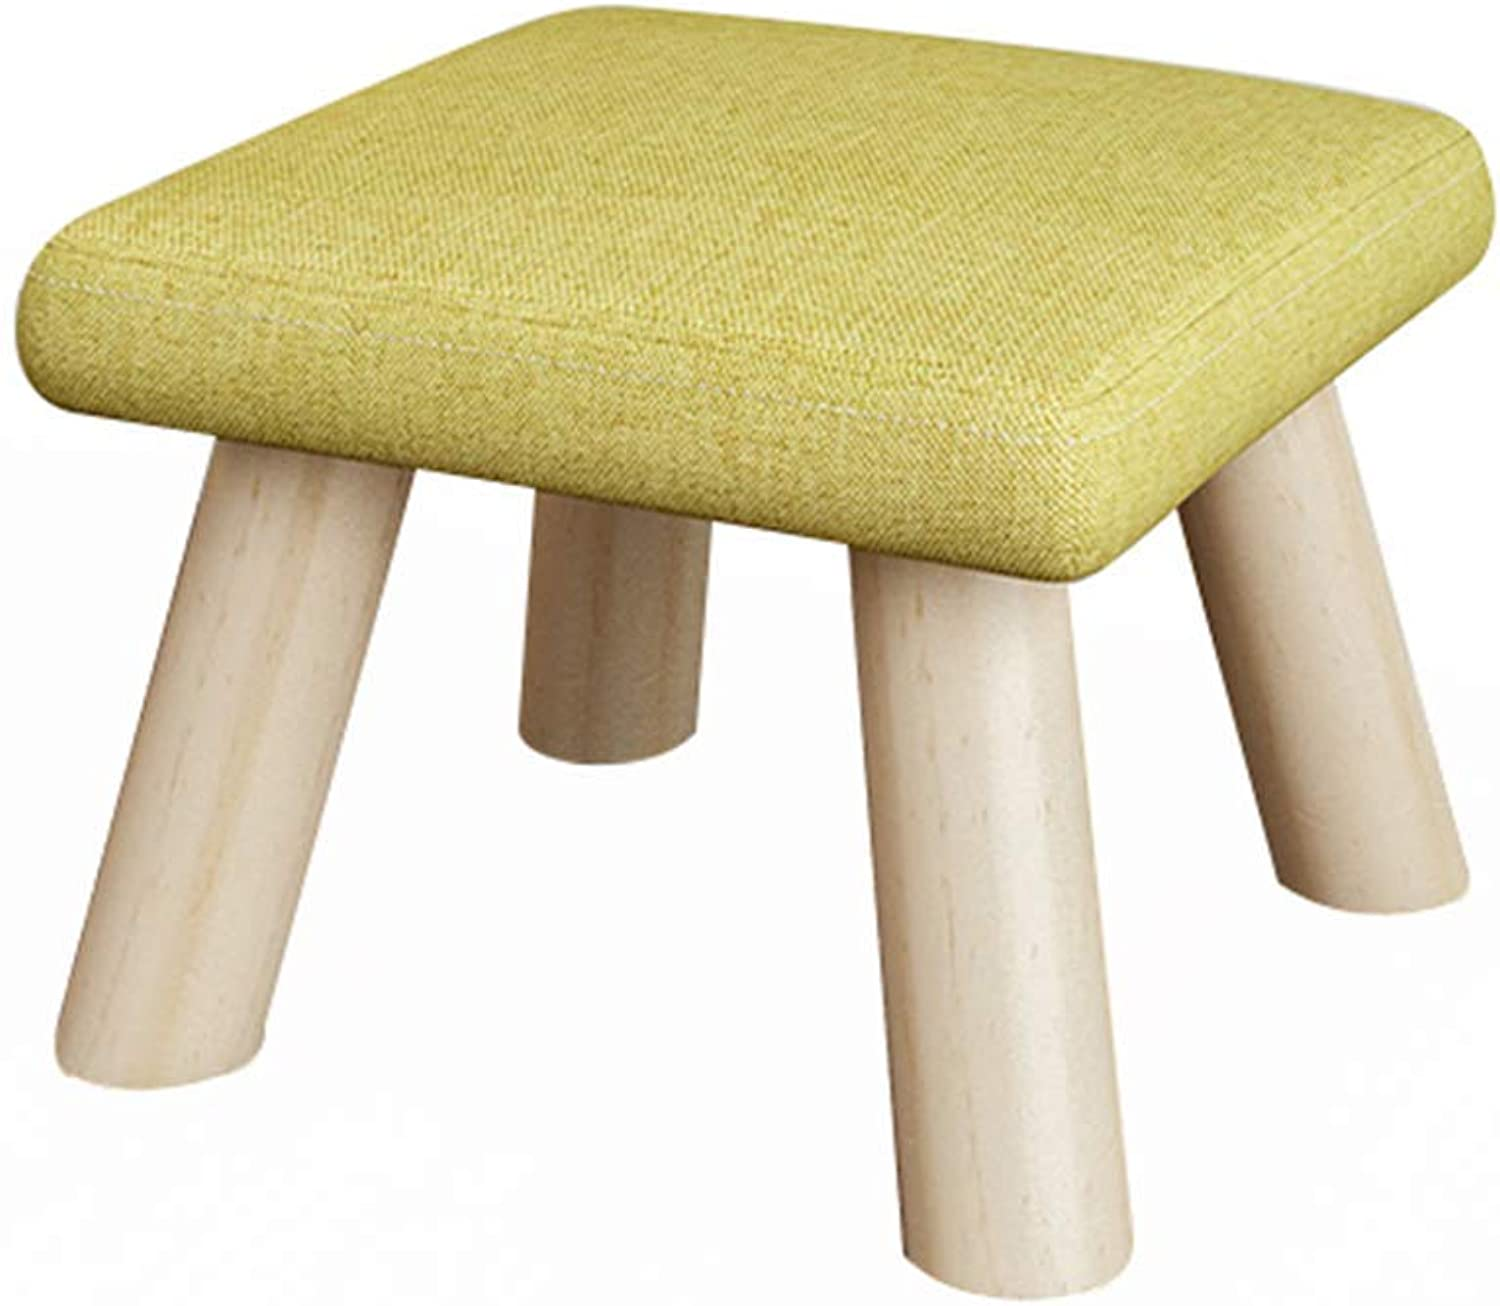 Monfs HOME Stool  Sofa Stool, Home shoes Bench, Solid Wood Living Room Small Stool Fabric Bench Comfortable decoration (color   E, Size   26  26  19cm) (color   G, Size   26  26  19cm)